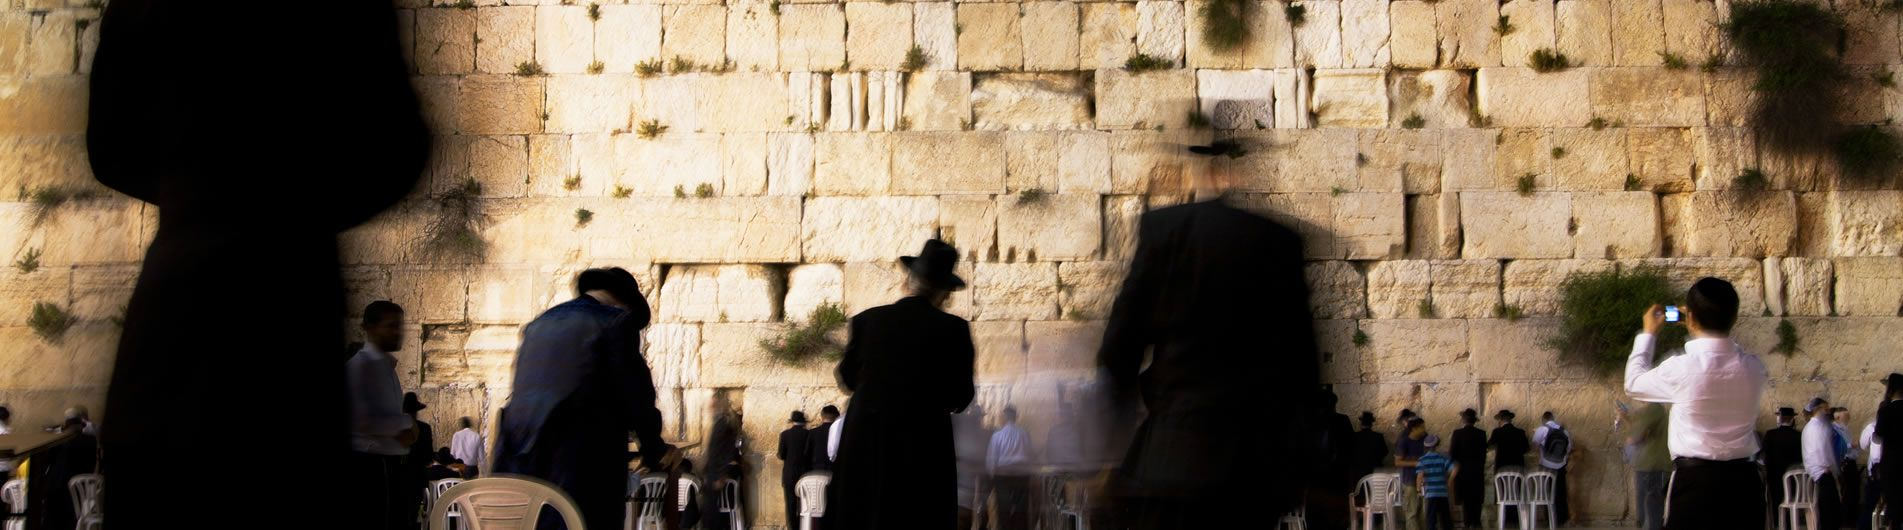 Visit the Western Wall